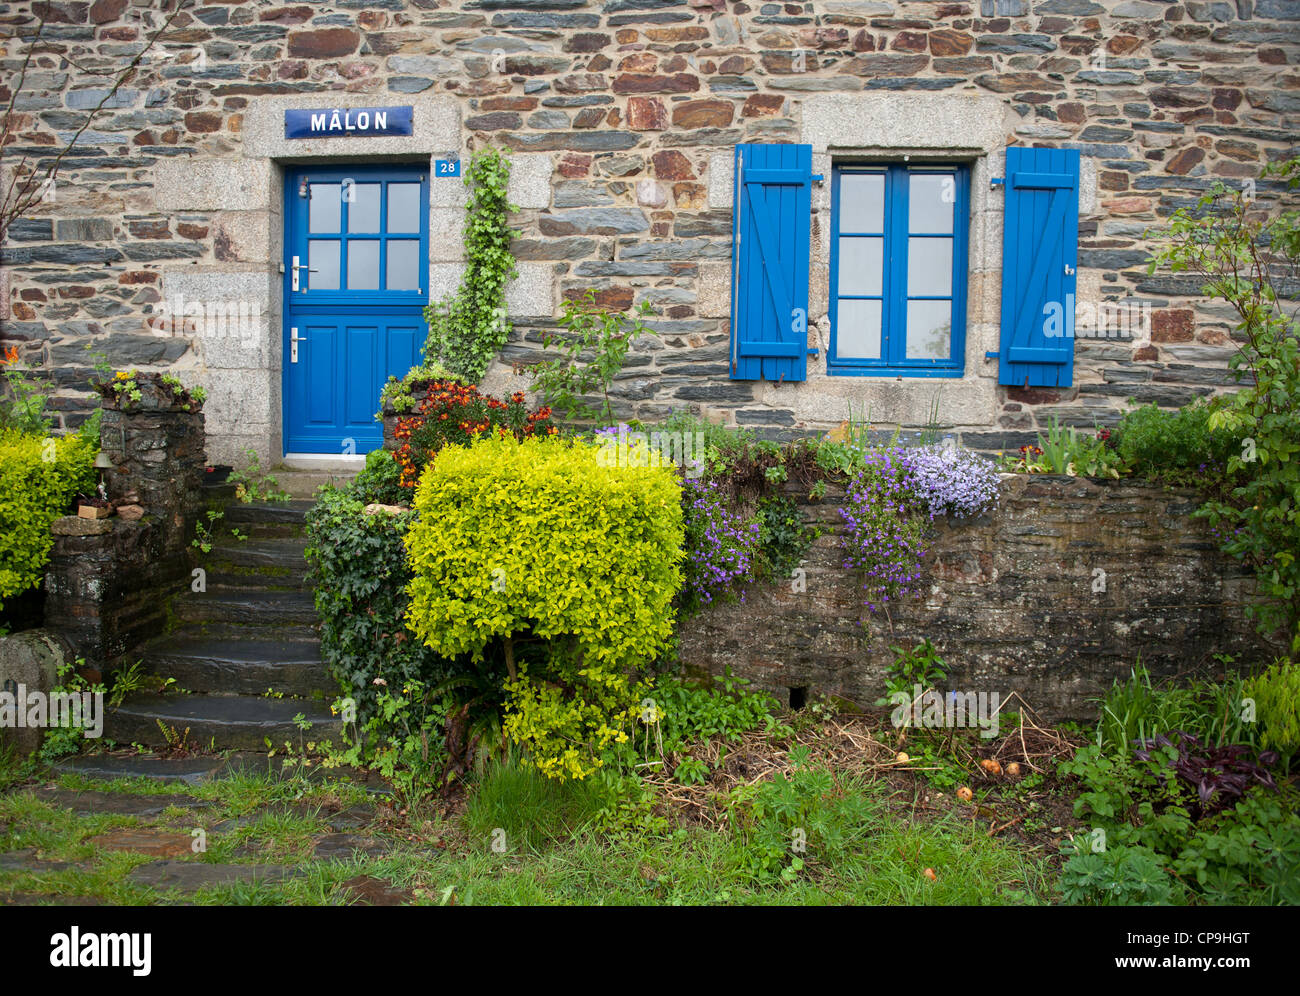 Traditional stone house of the lock keeper at Mâlon on the Vilaine river in Brittany, France - Stock Image